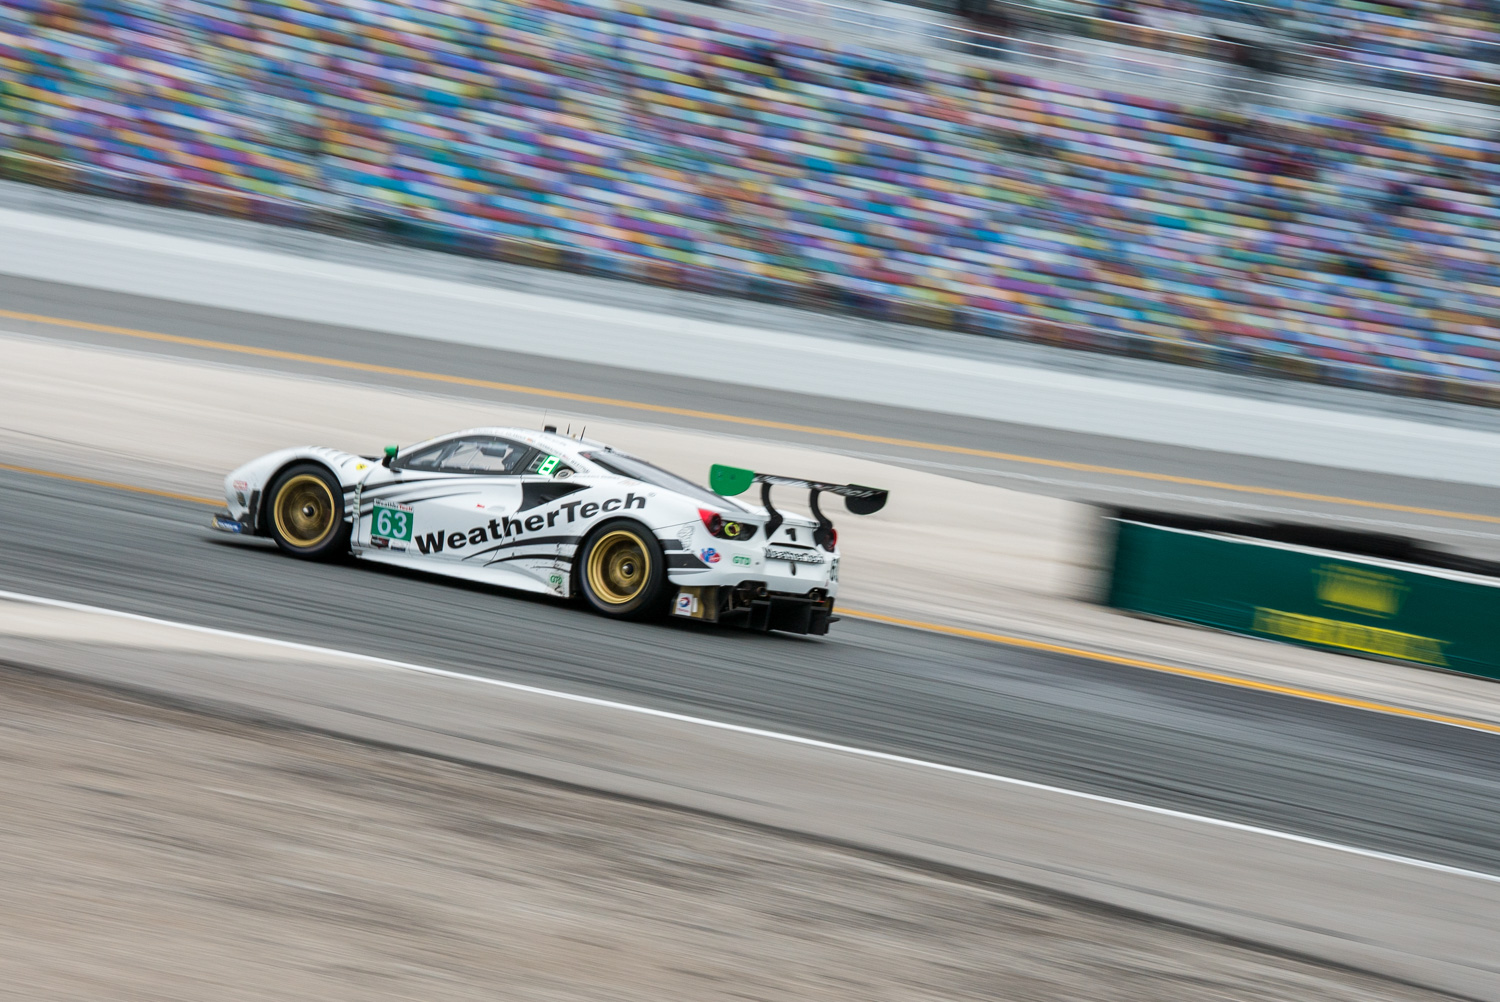 Scuderia Corsa's WeatherTech Ferrari was quick in certain stages of the race.